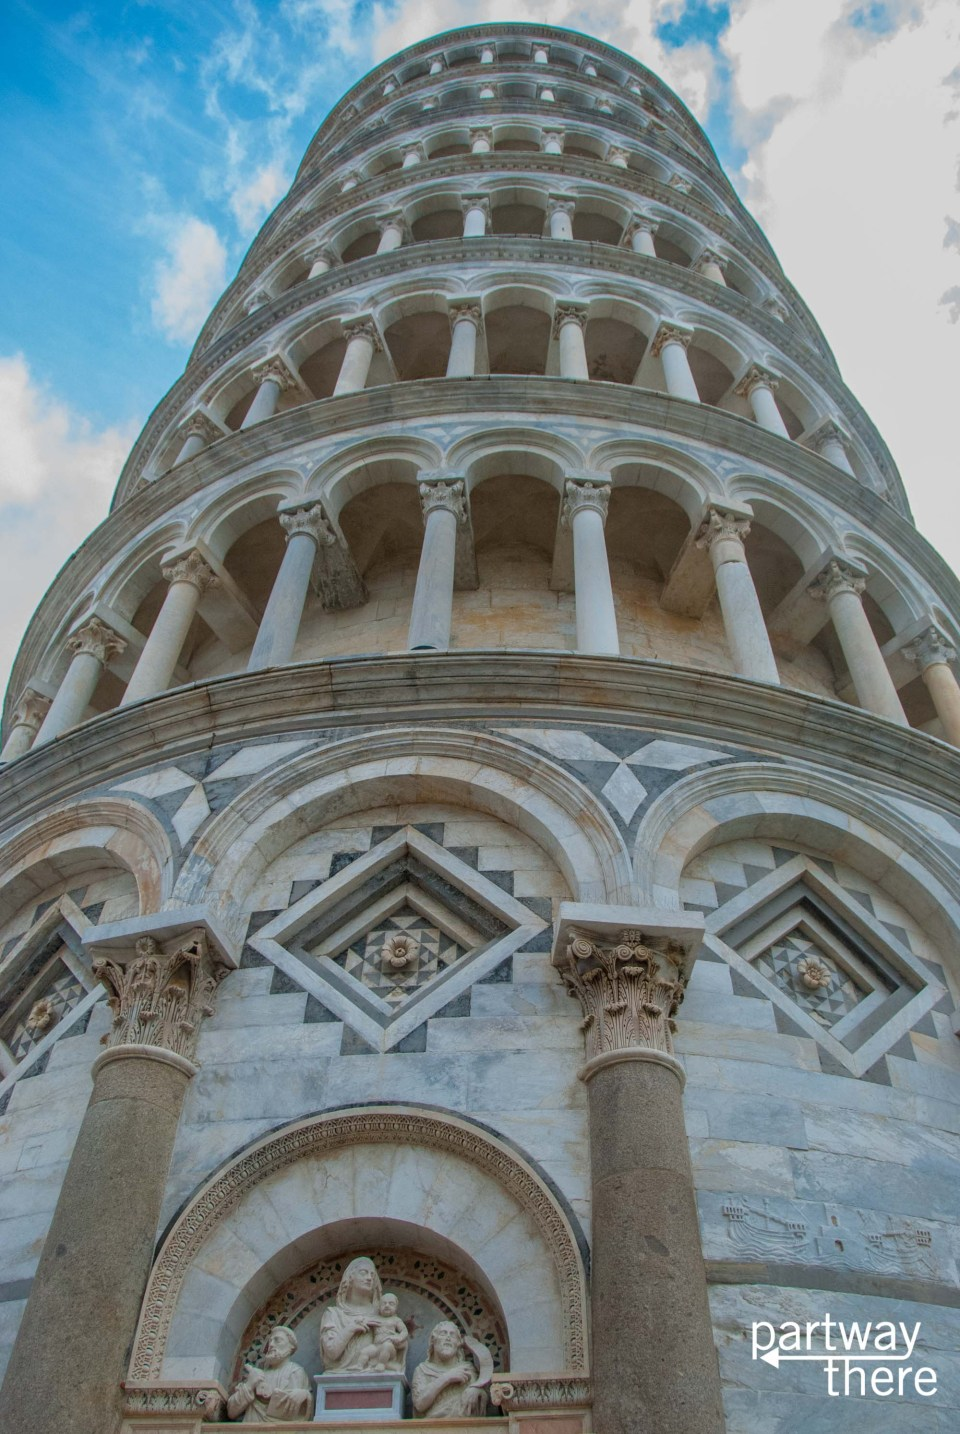 Close-up looking up of leaning tower of Pisa